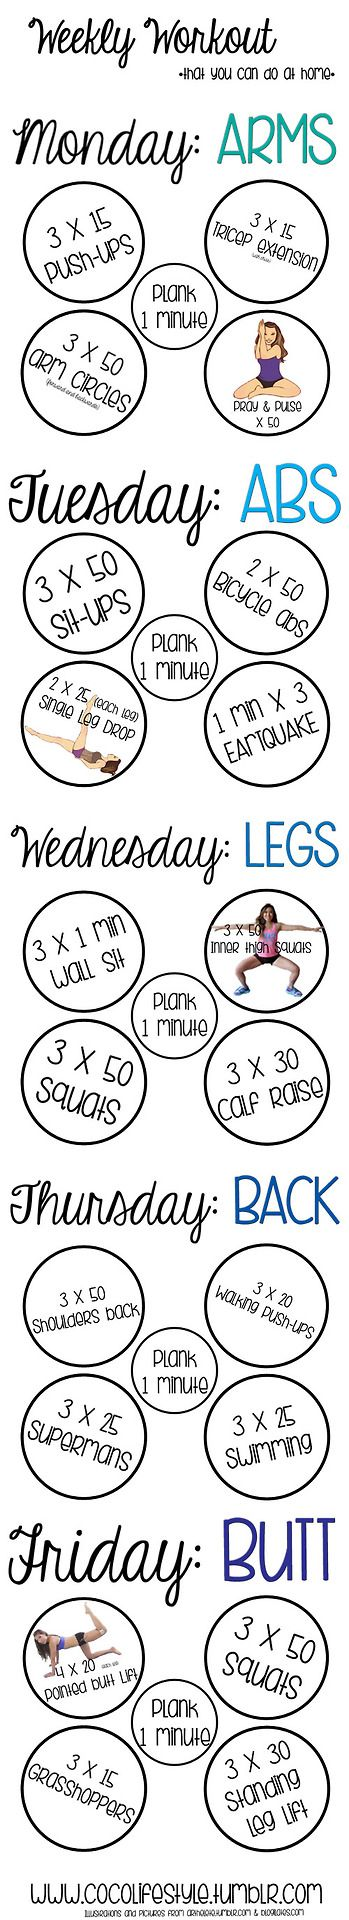 a fun way to display your customizable Weekly workout you can do at home